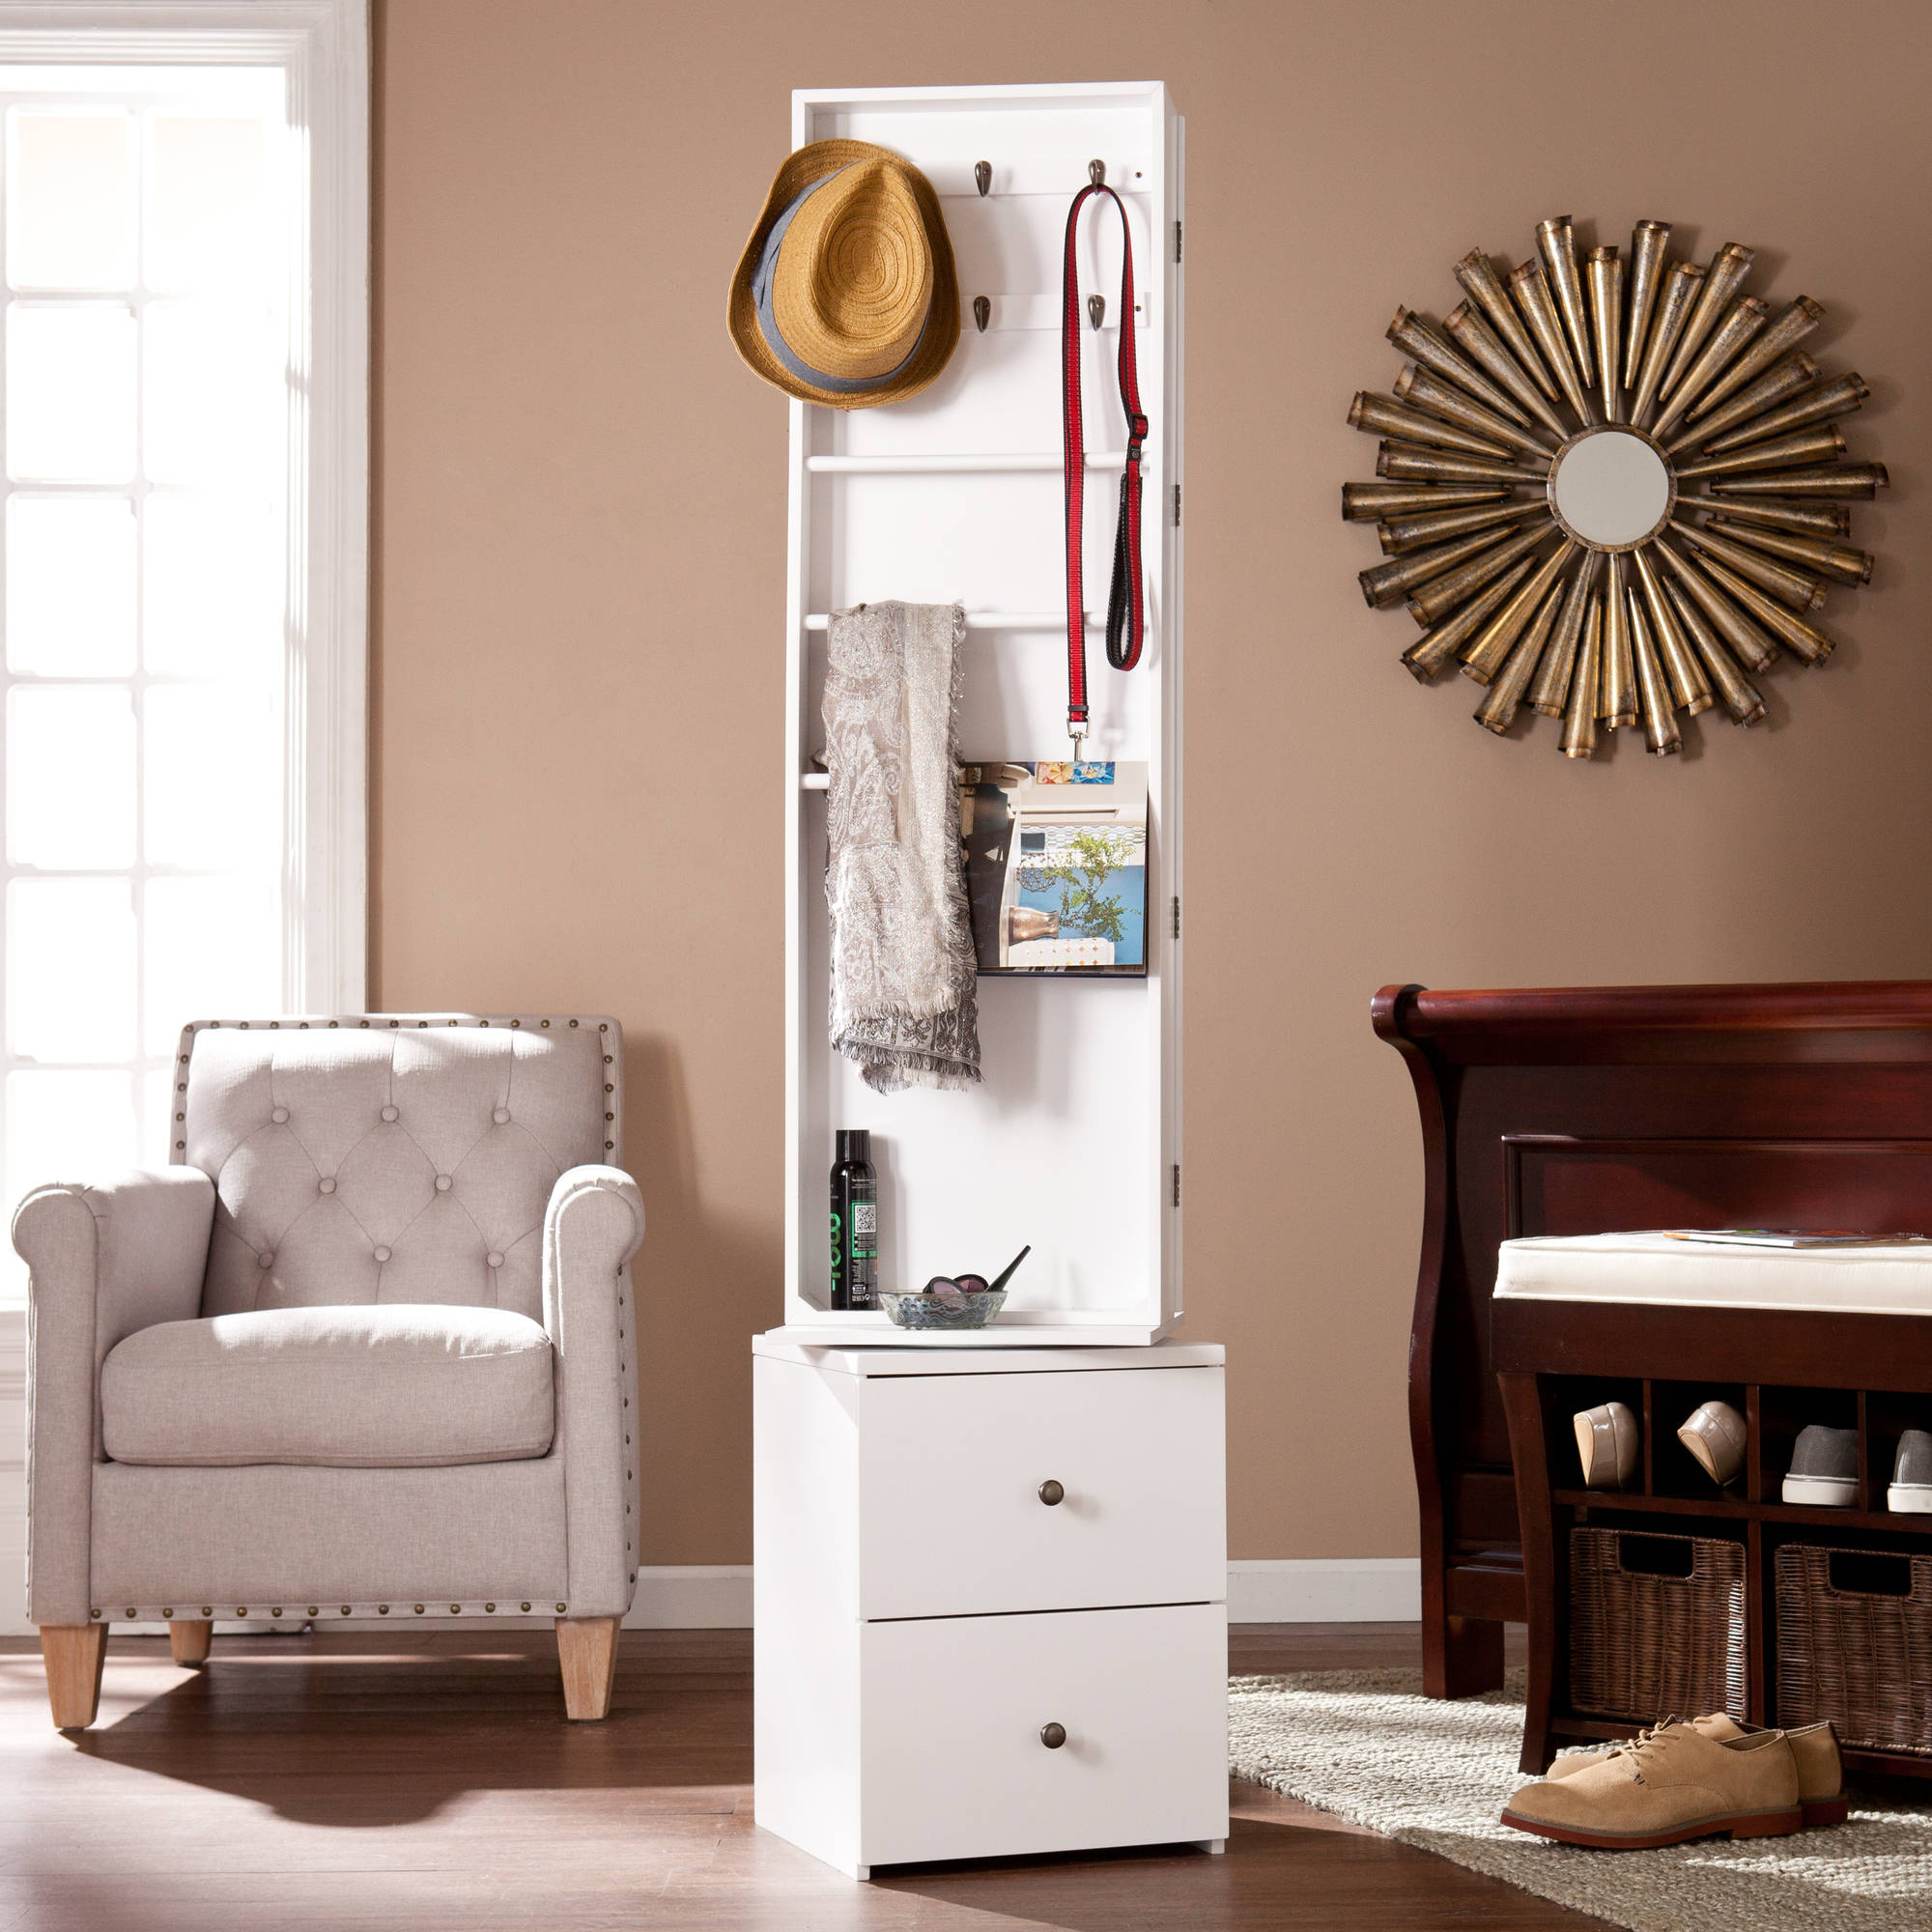 Southern Enterprises Derby Swivel Jewelry Organizer with Mirror, White